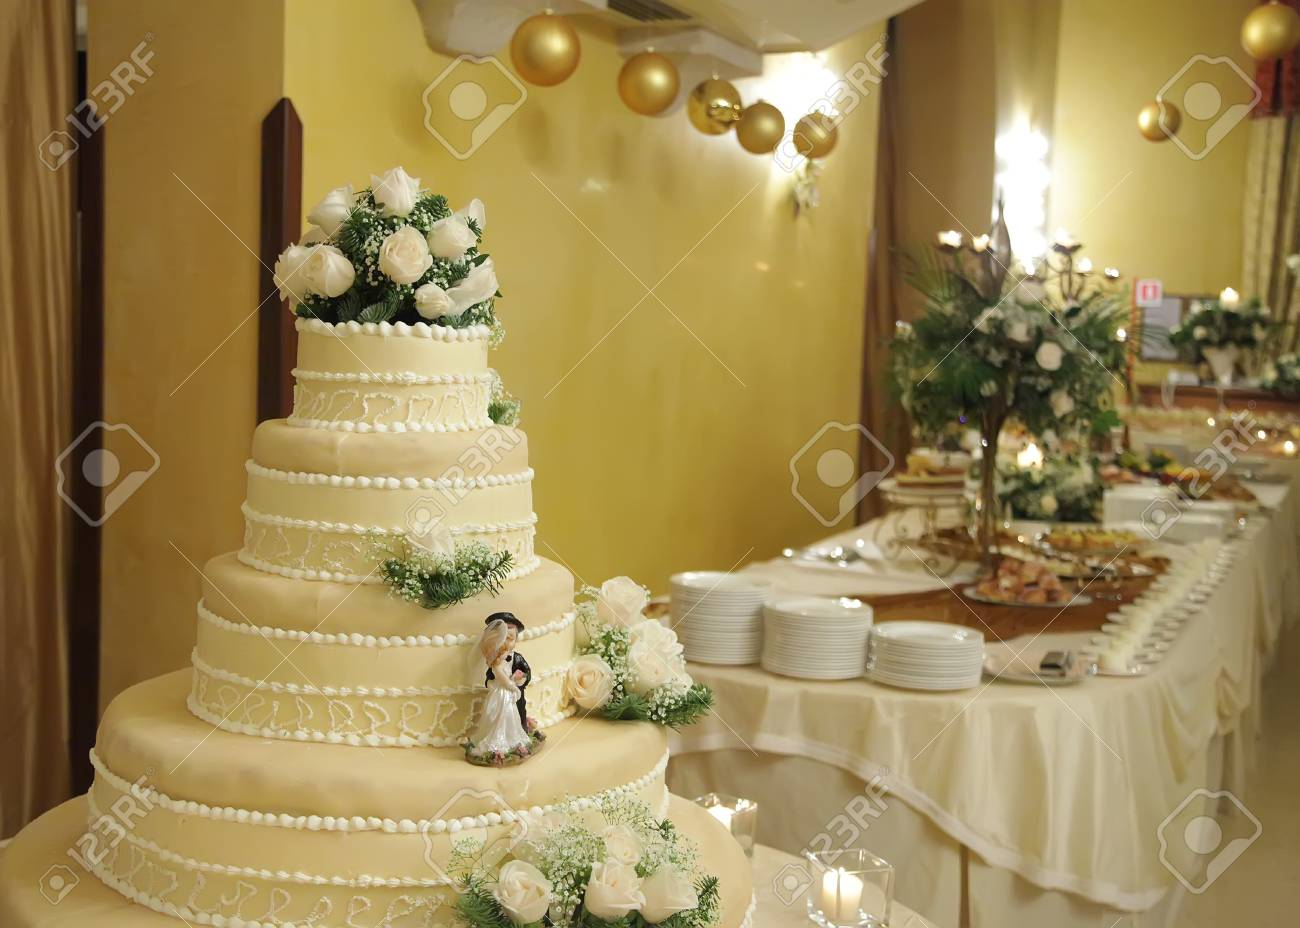 Wedding Cake With The Decoration Of The Bride And Groom And Table ...